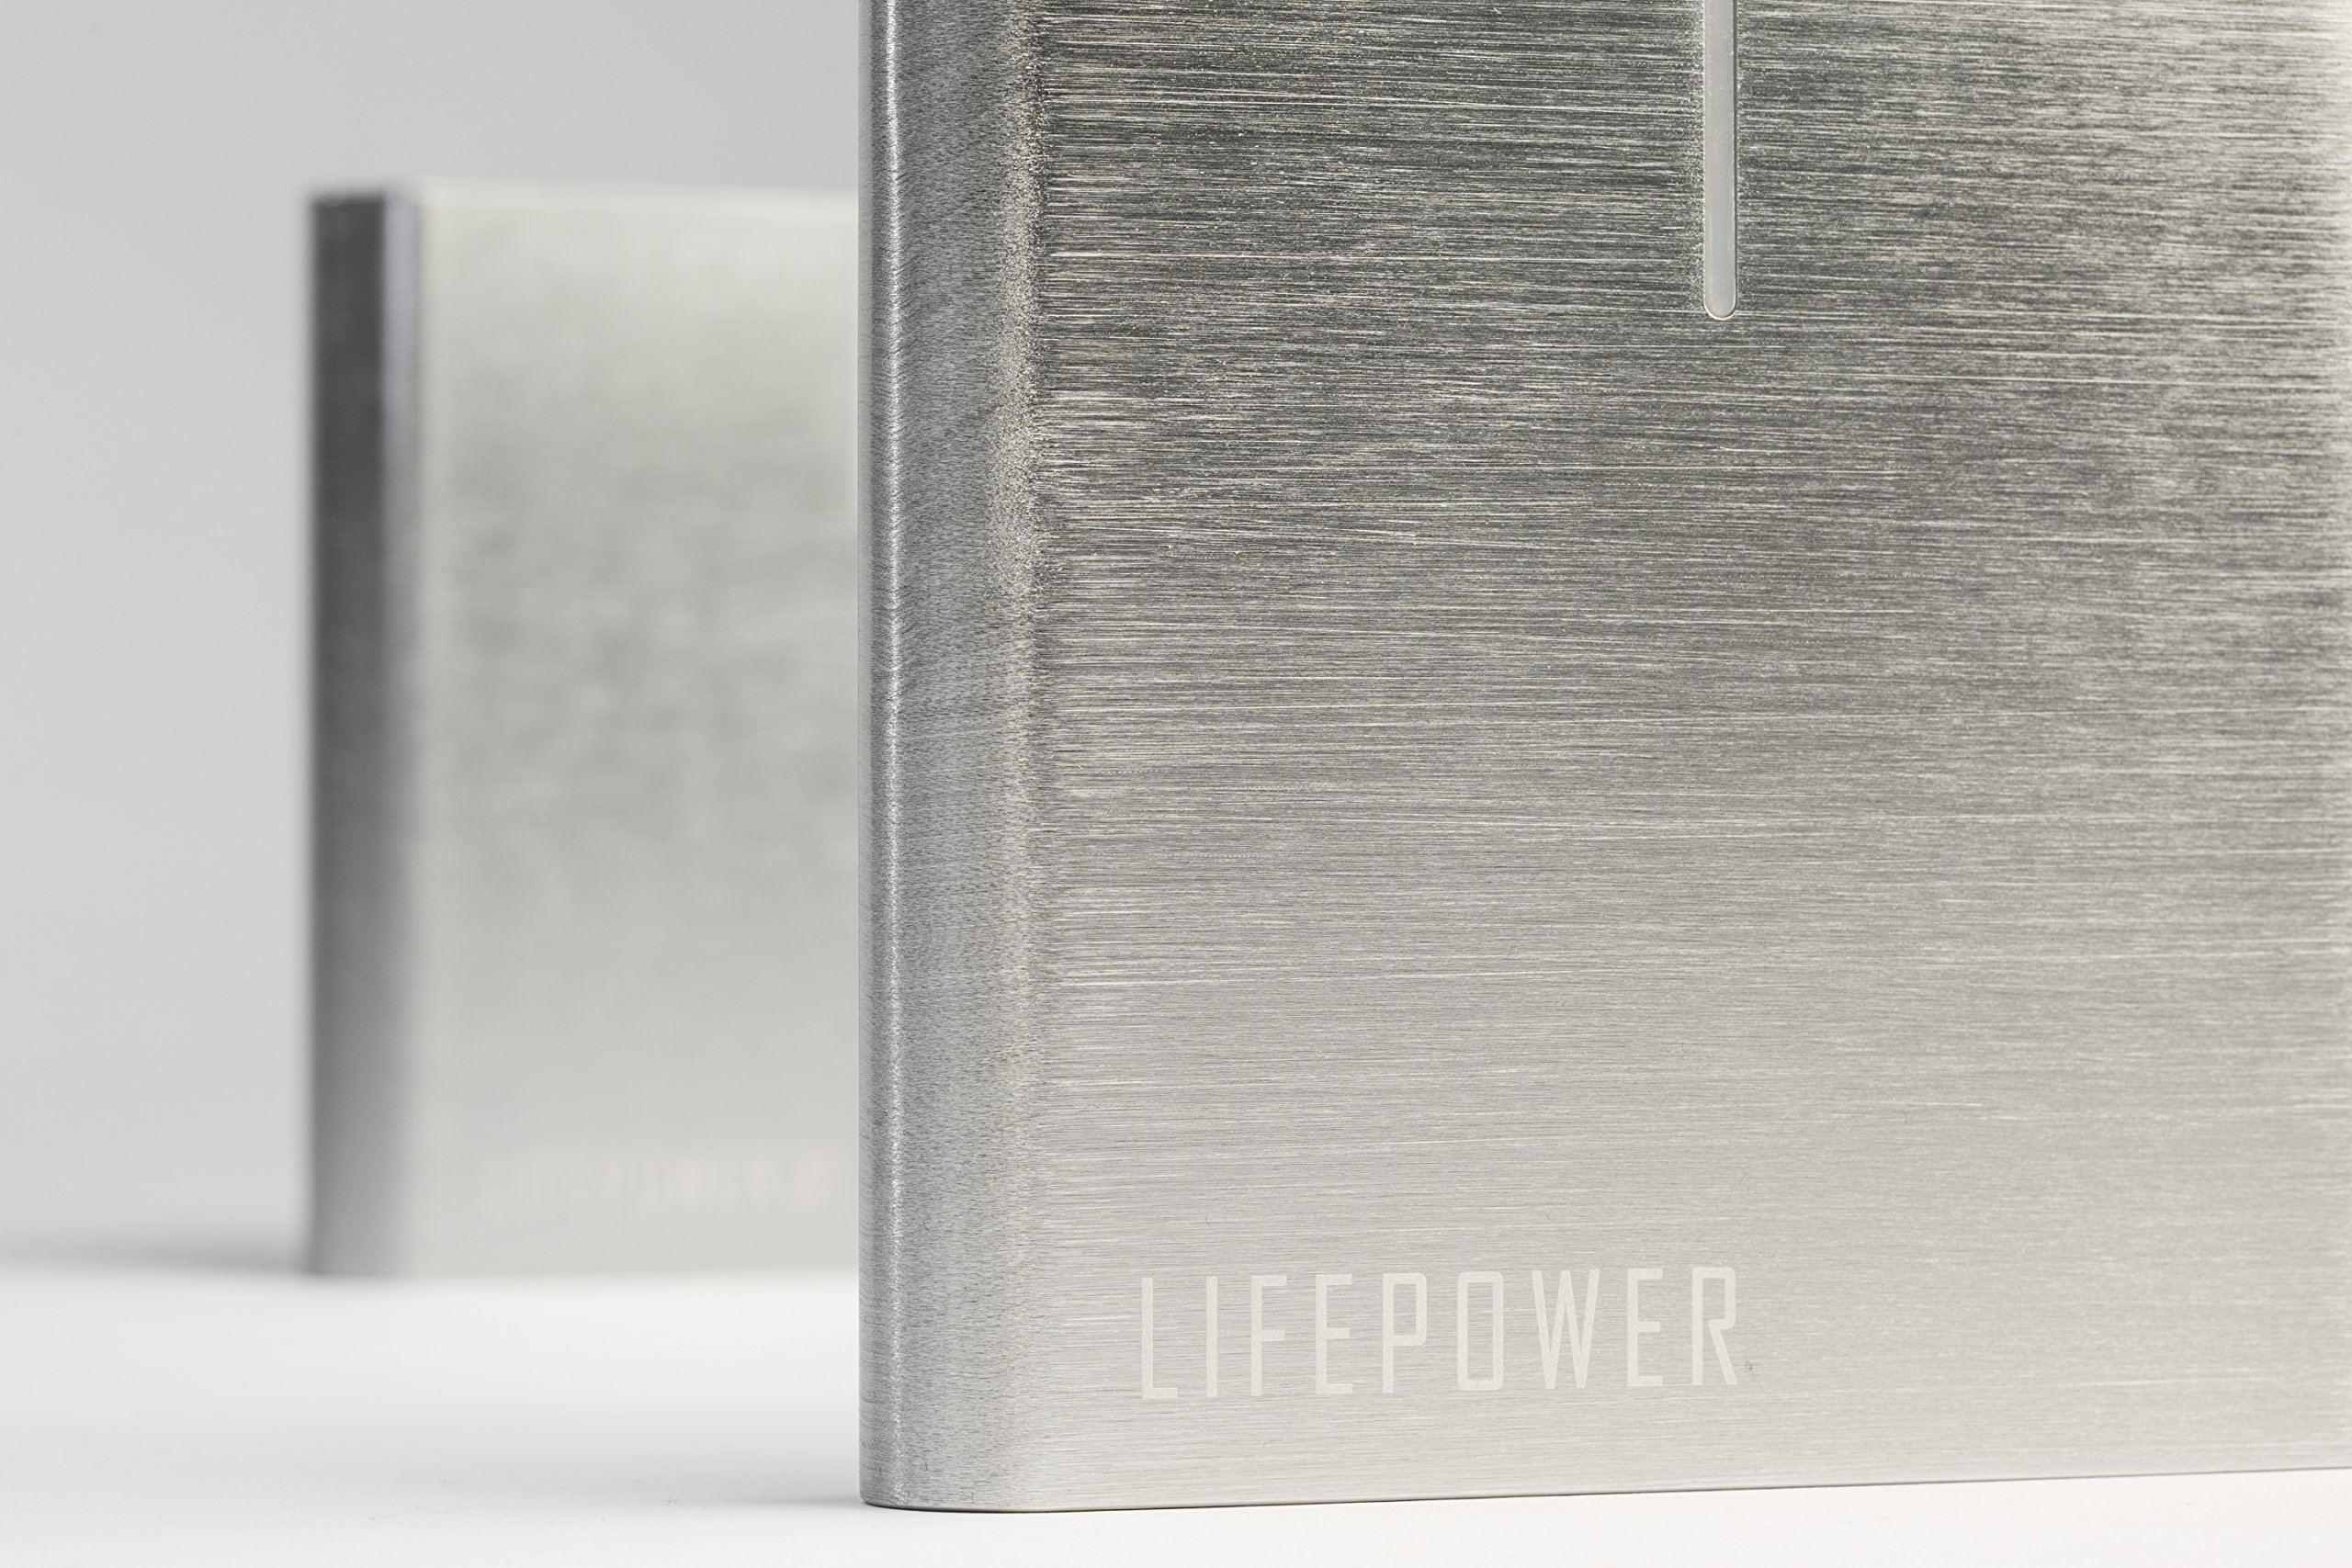 LIFEPOWR A2 S - Portable Battery w/ 120V AC Outlet. Power Up MacBook, TV, Laptop, Camera, Camping, Lights, CPAP,... Universal Powerbank with plug, up to 120W max